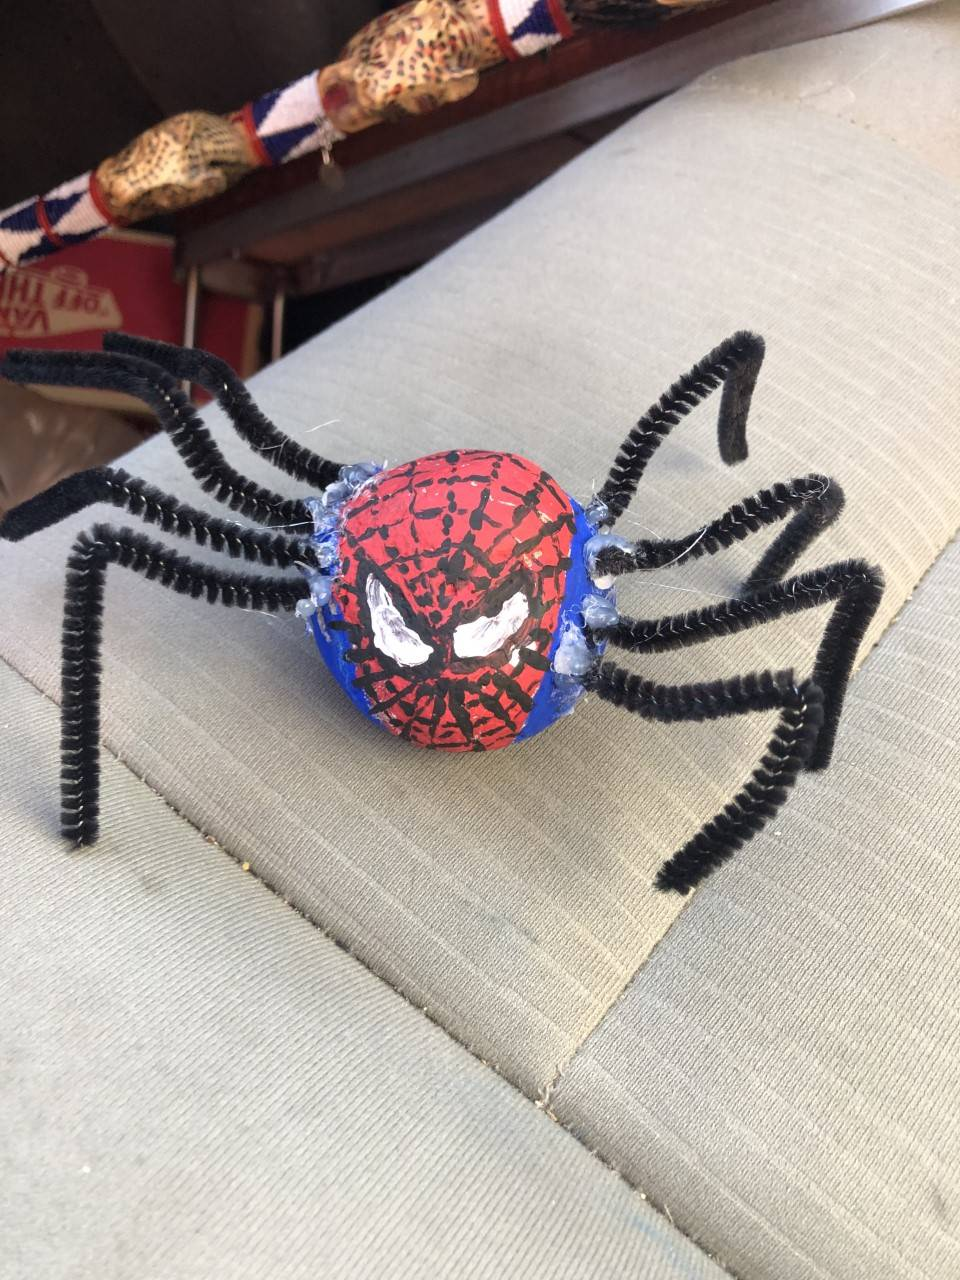 A pet rock has been painted to look like spiderman.